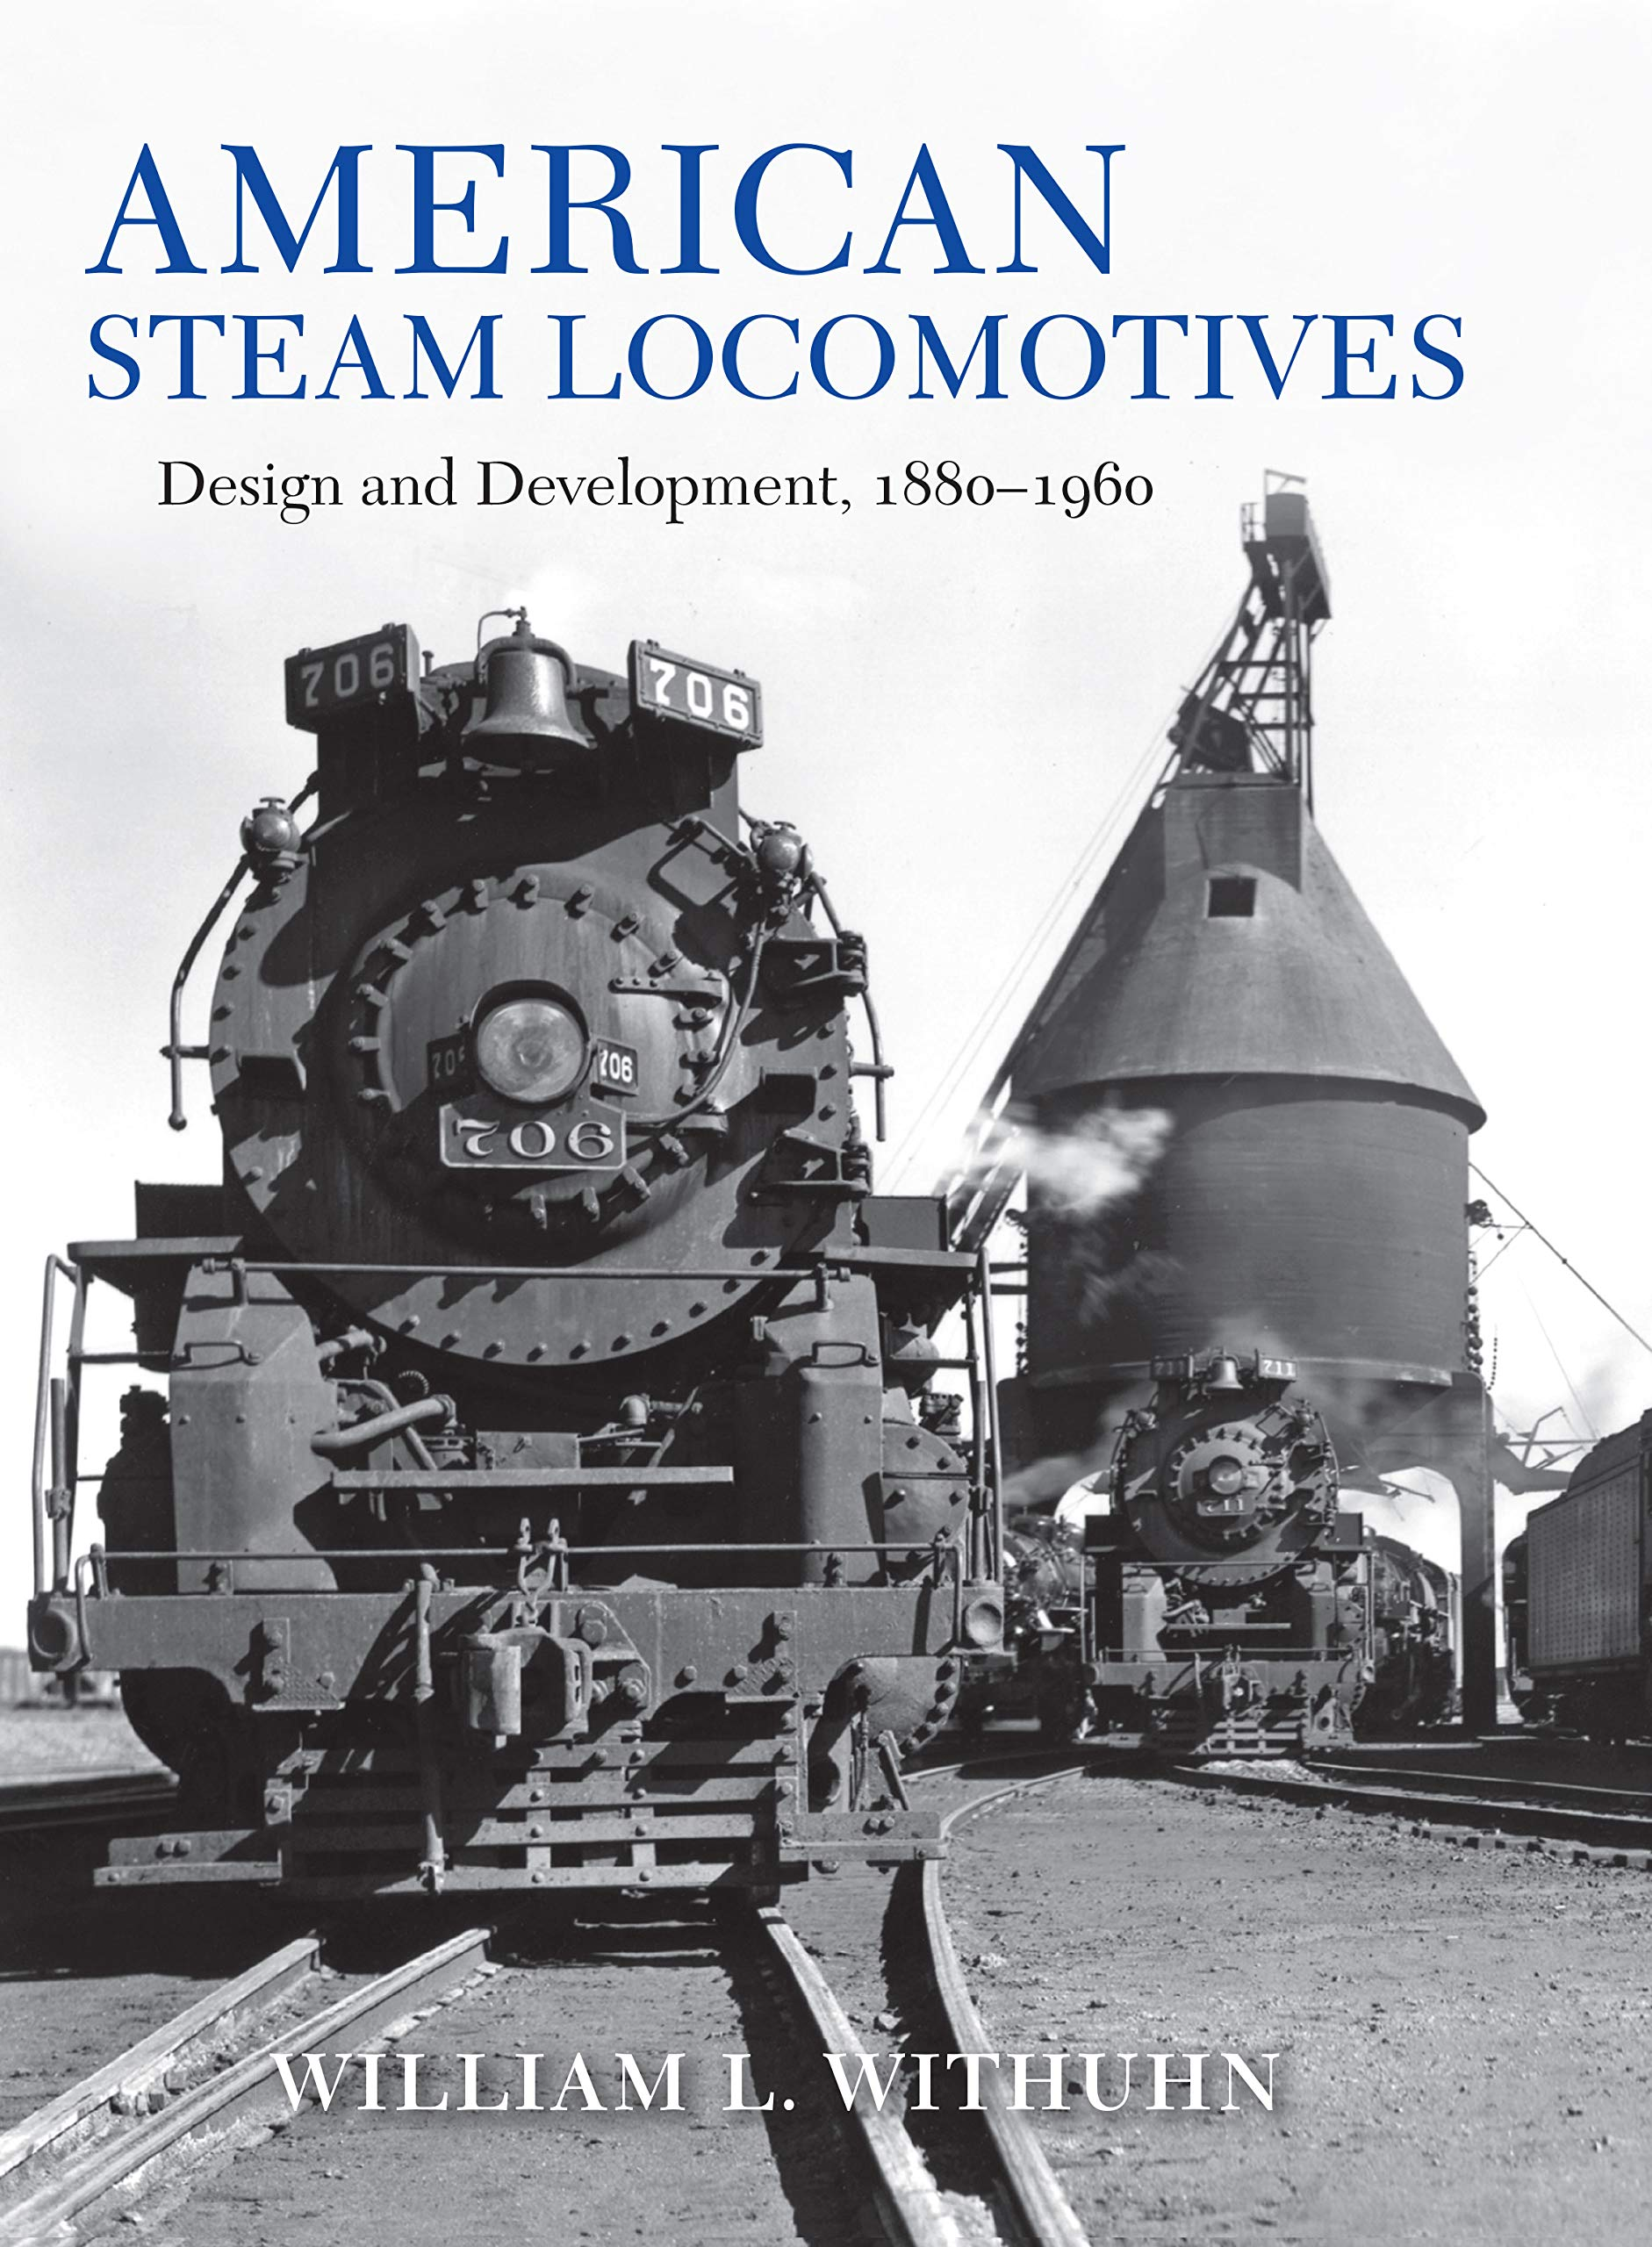 American Steam Locomotives: Design and Development, 1880-1960 (Railroads Past and Present) by Indiana University Press